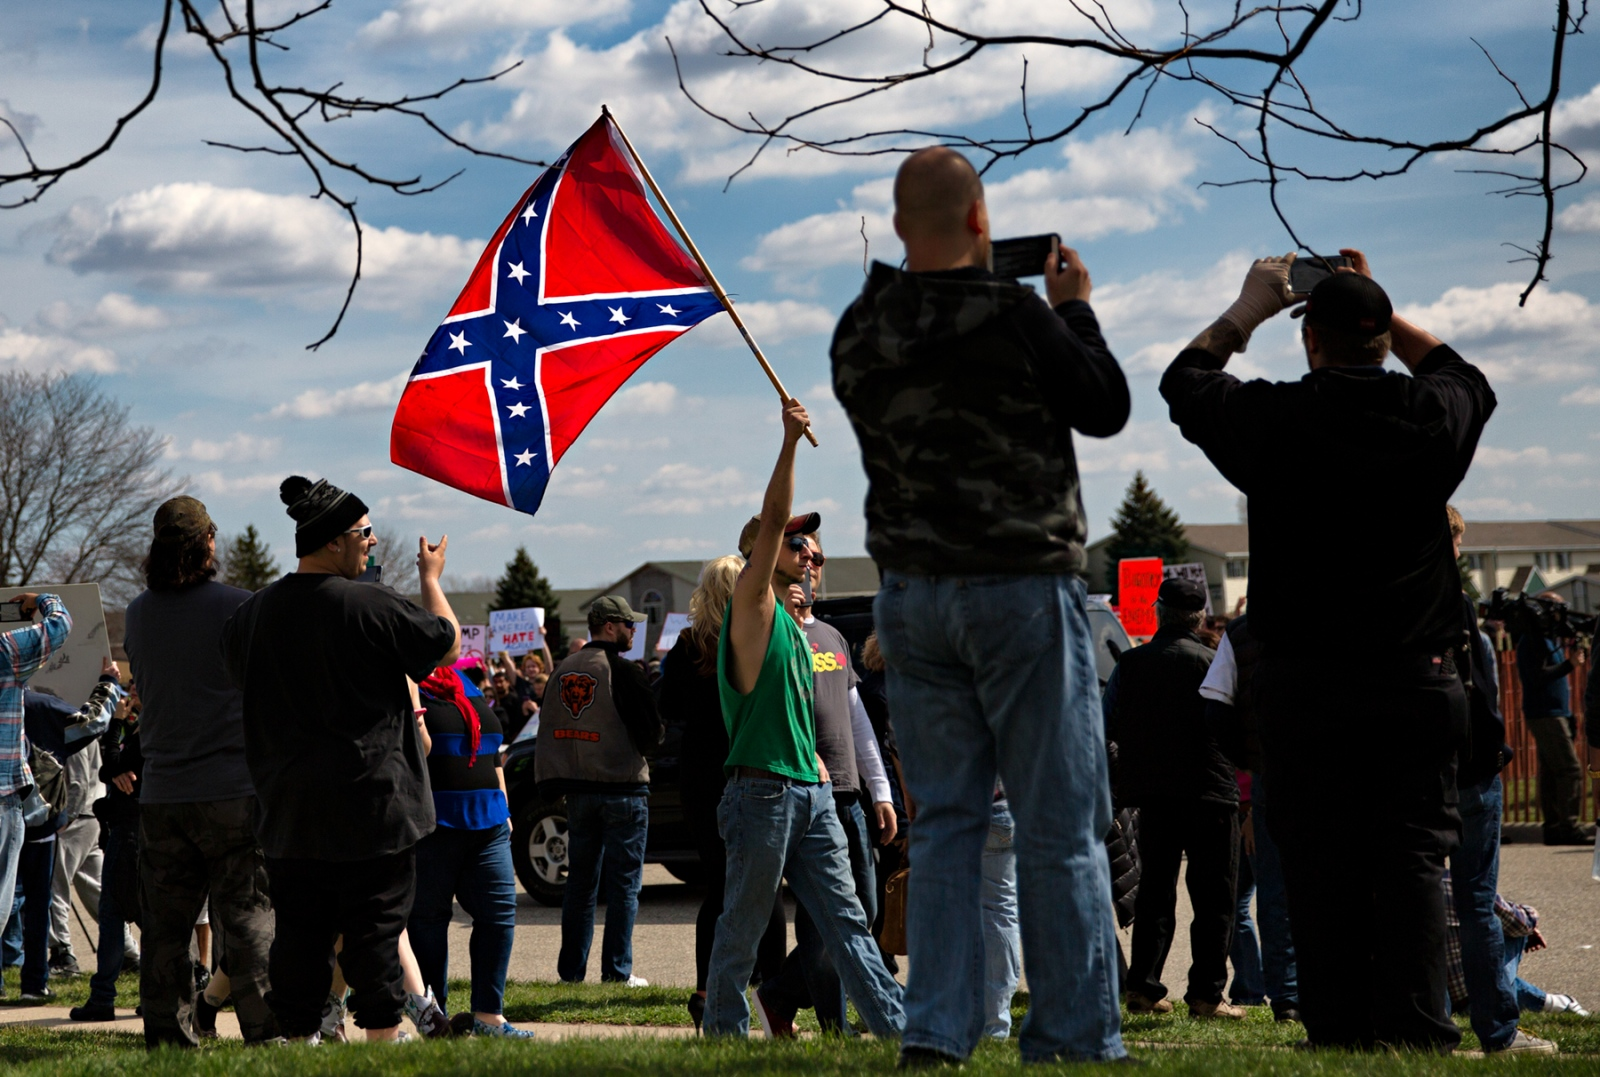 March 29, 2016 - Janesville, Wisconsin - Supporters of Donald Trump waive a confederate flag in the face of the protestors in Janesville, Wisconsin where Trump held a rally.